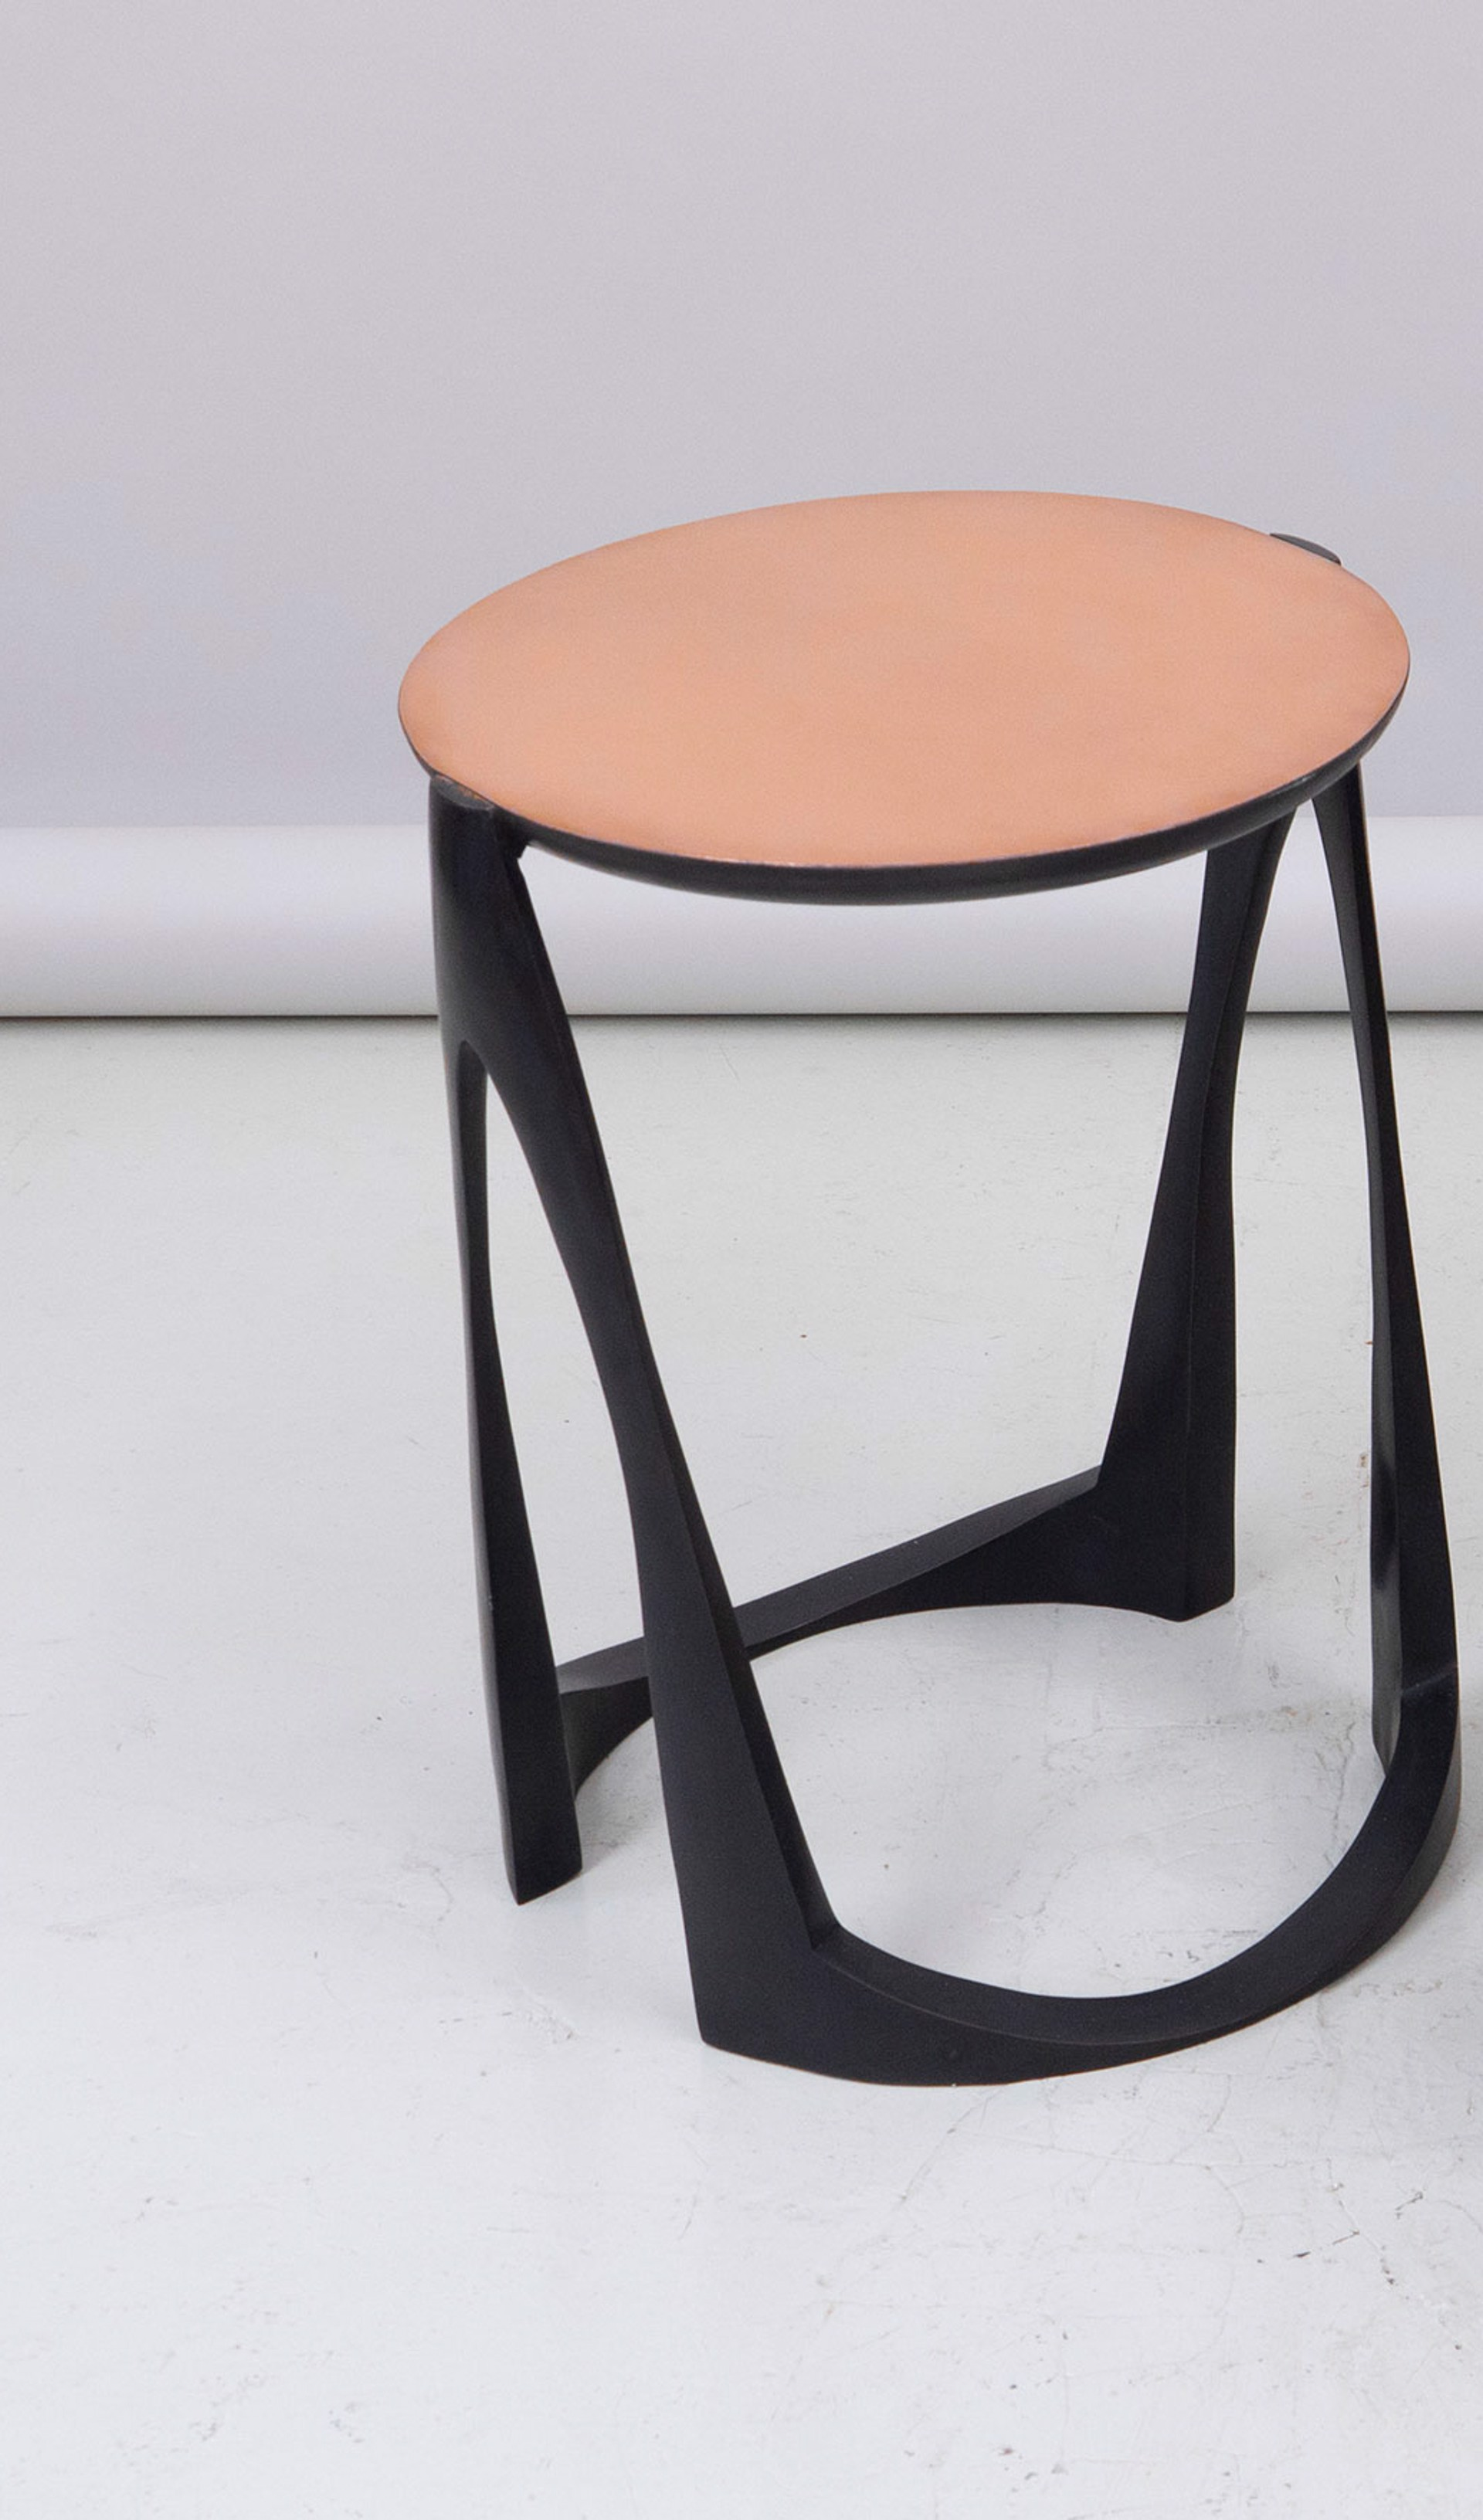 Side table bronze by Anasthasia Millot